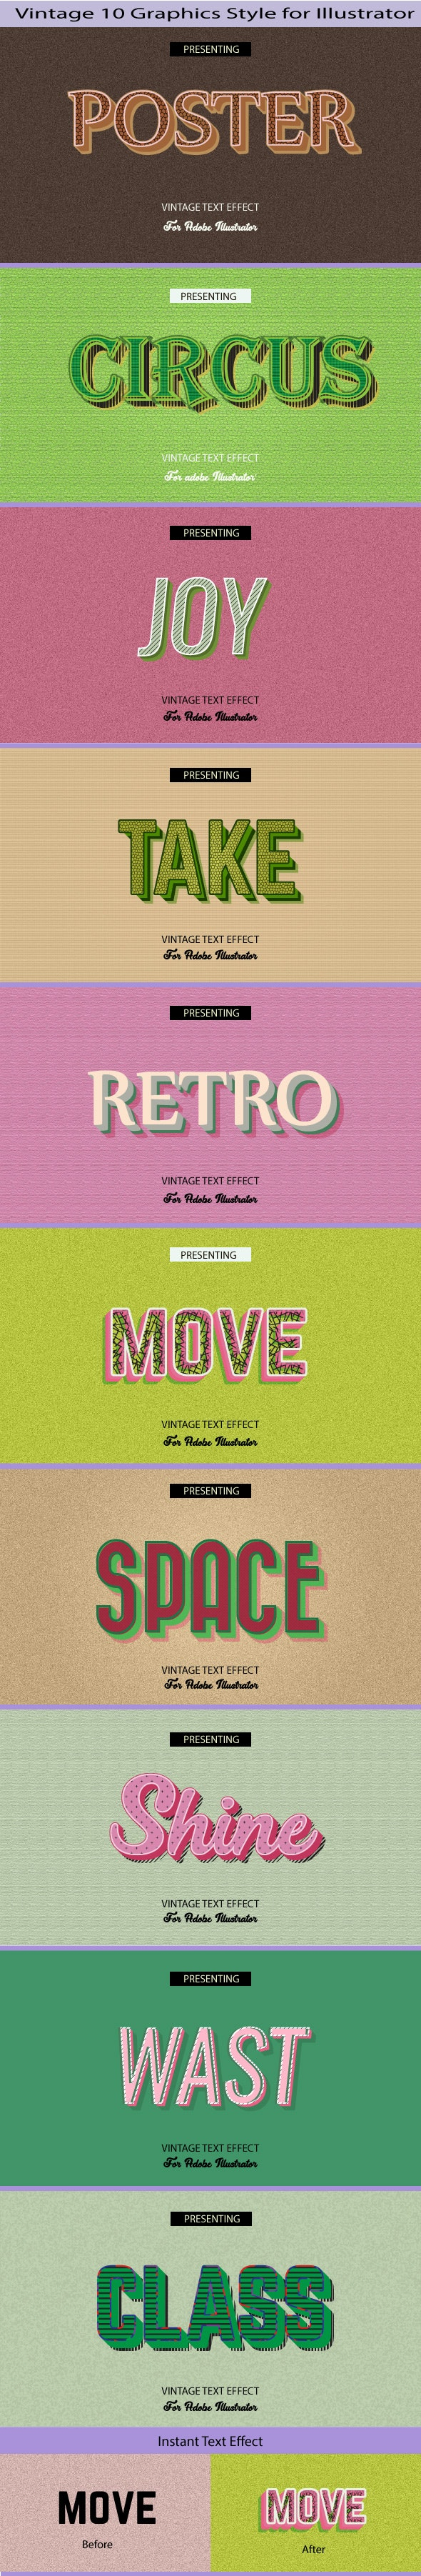 Vintage Graphics Style for Illustrator - Add-ons